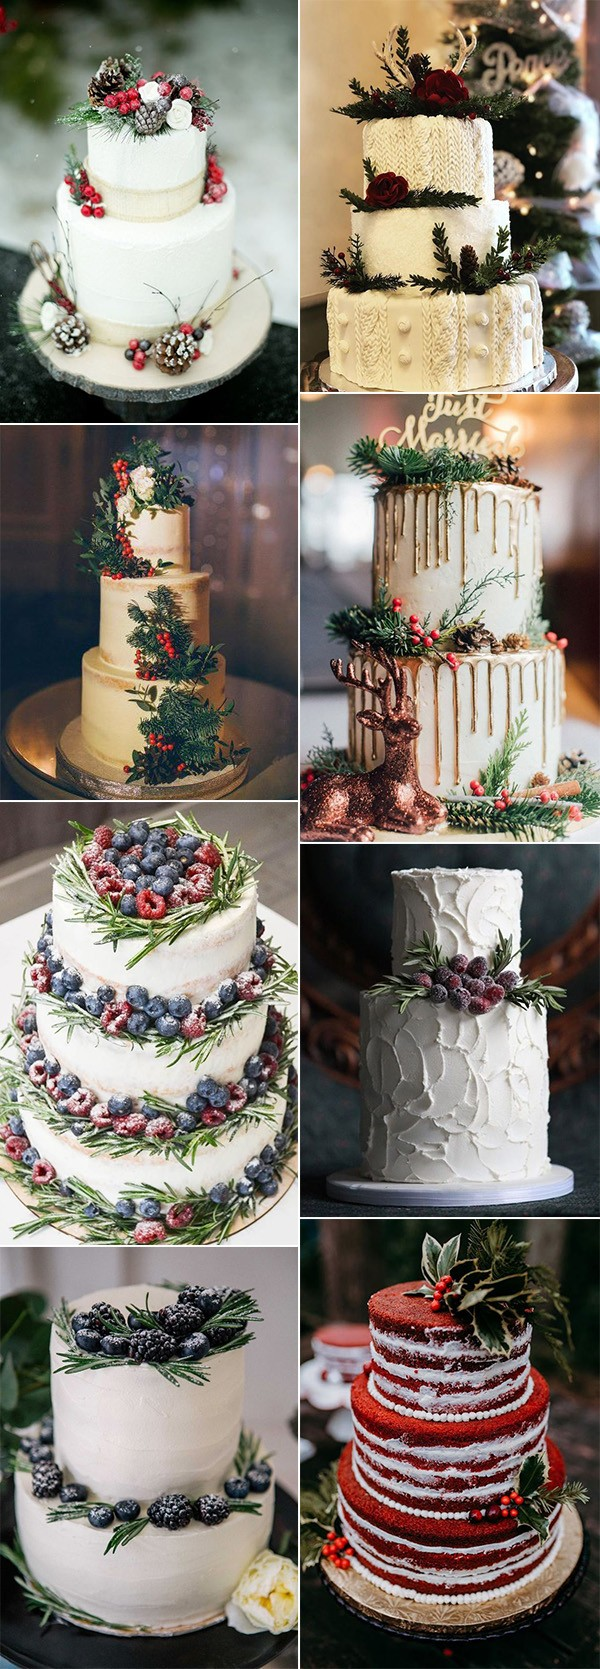 whimsical winter wedding cakes with berries